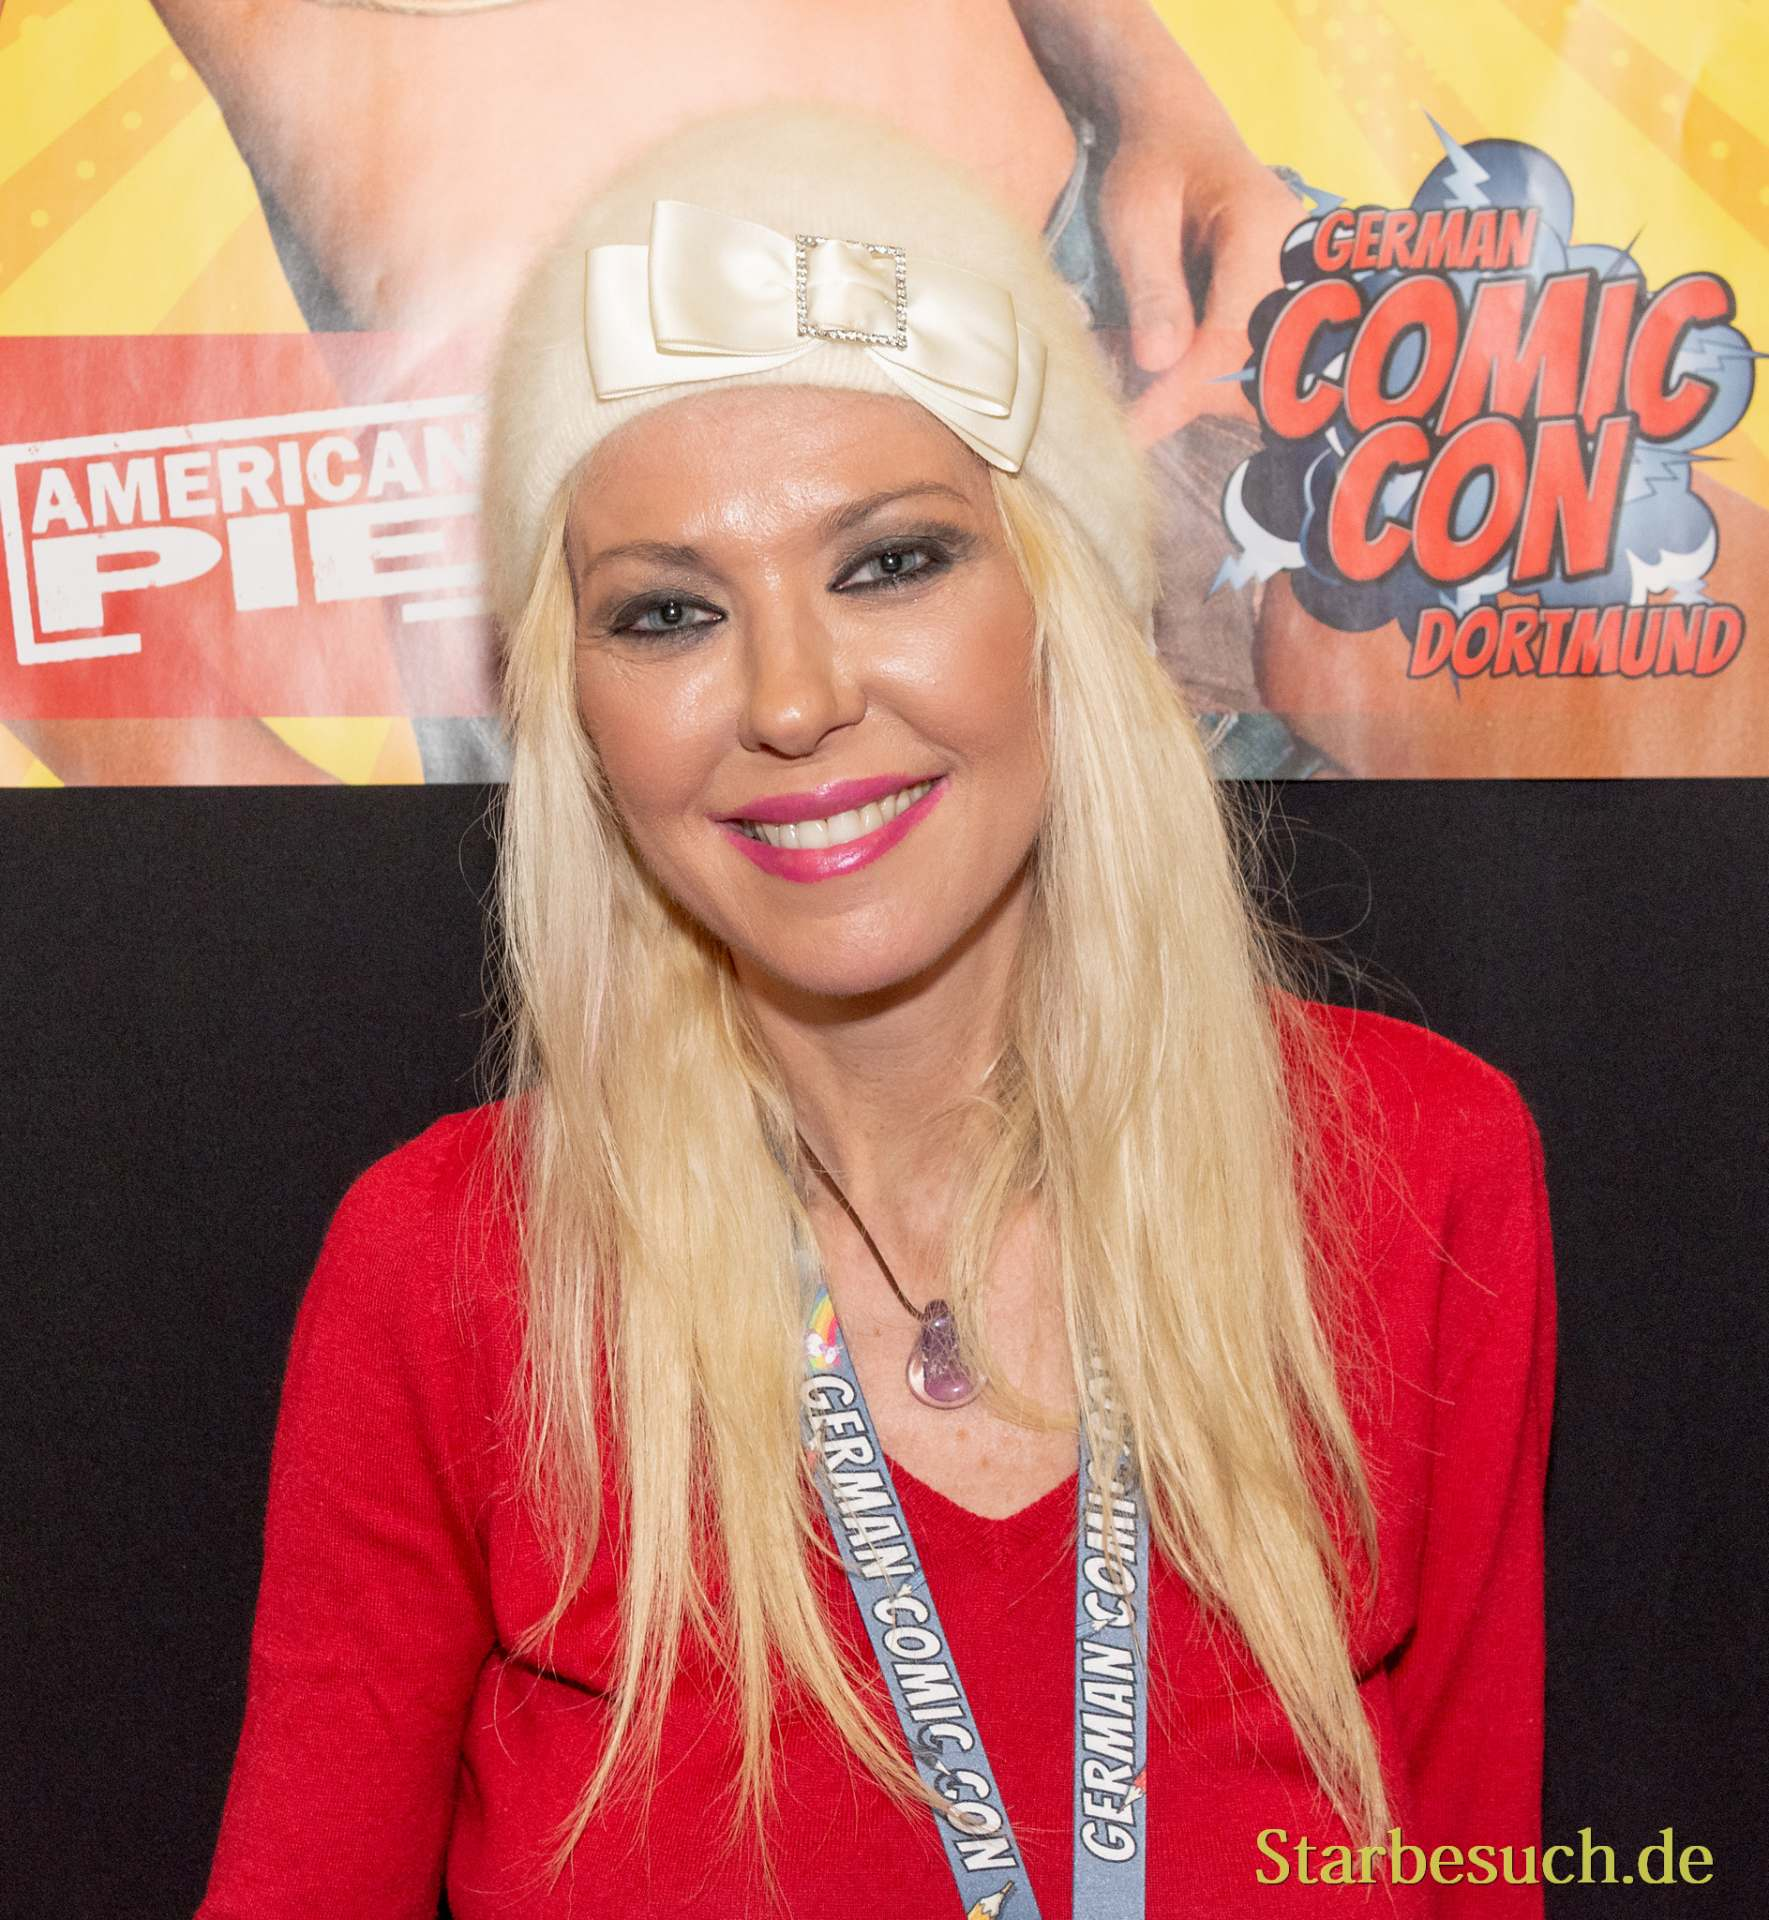 DORTMUND, GERMANY - December 1st 2018: Tara Reid (*1975, American actress - Sharknado, American Pie) at German Comic Con Dortmund, a two day fan convention